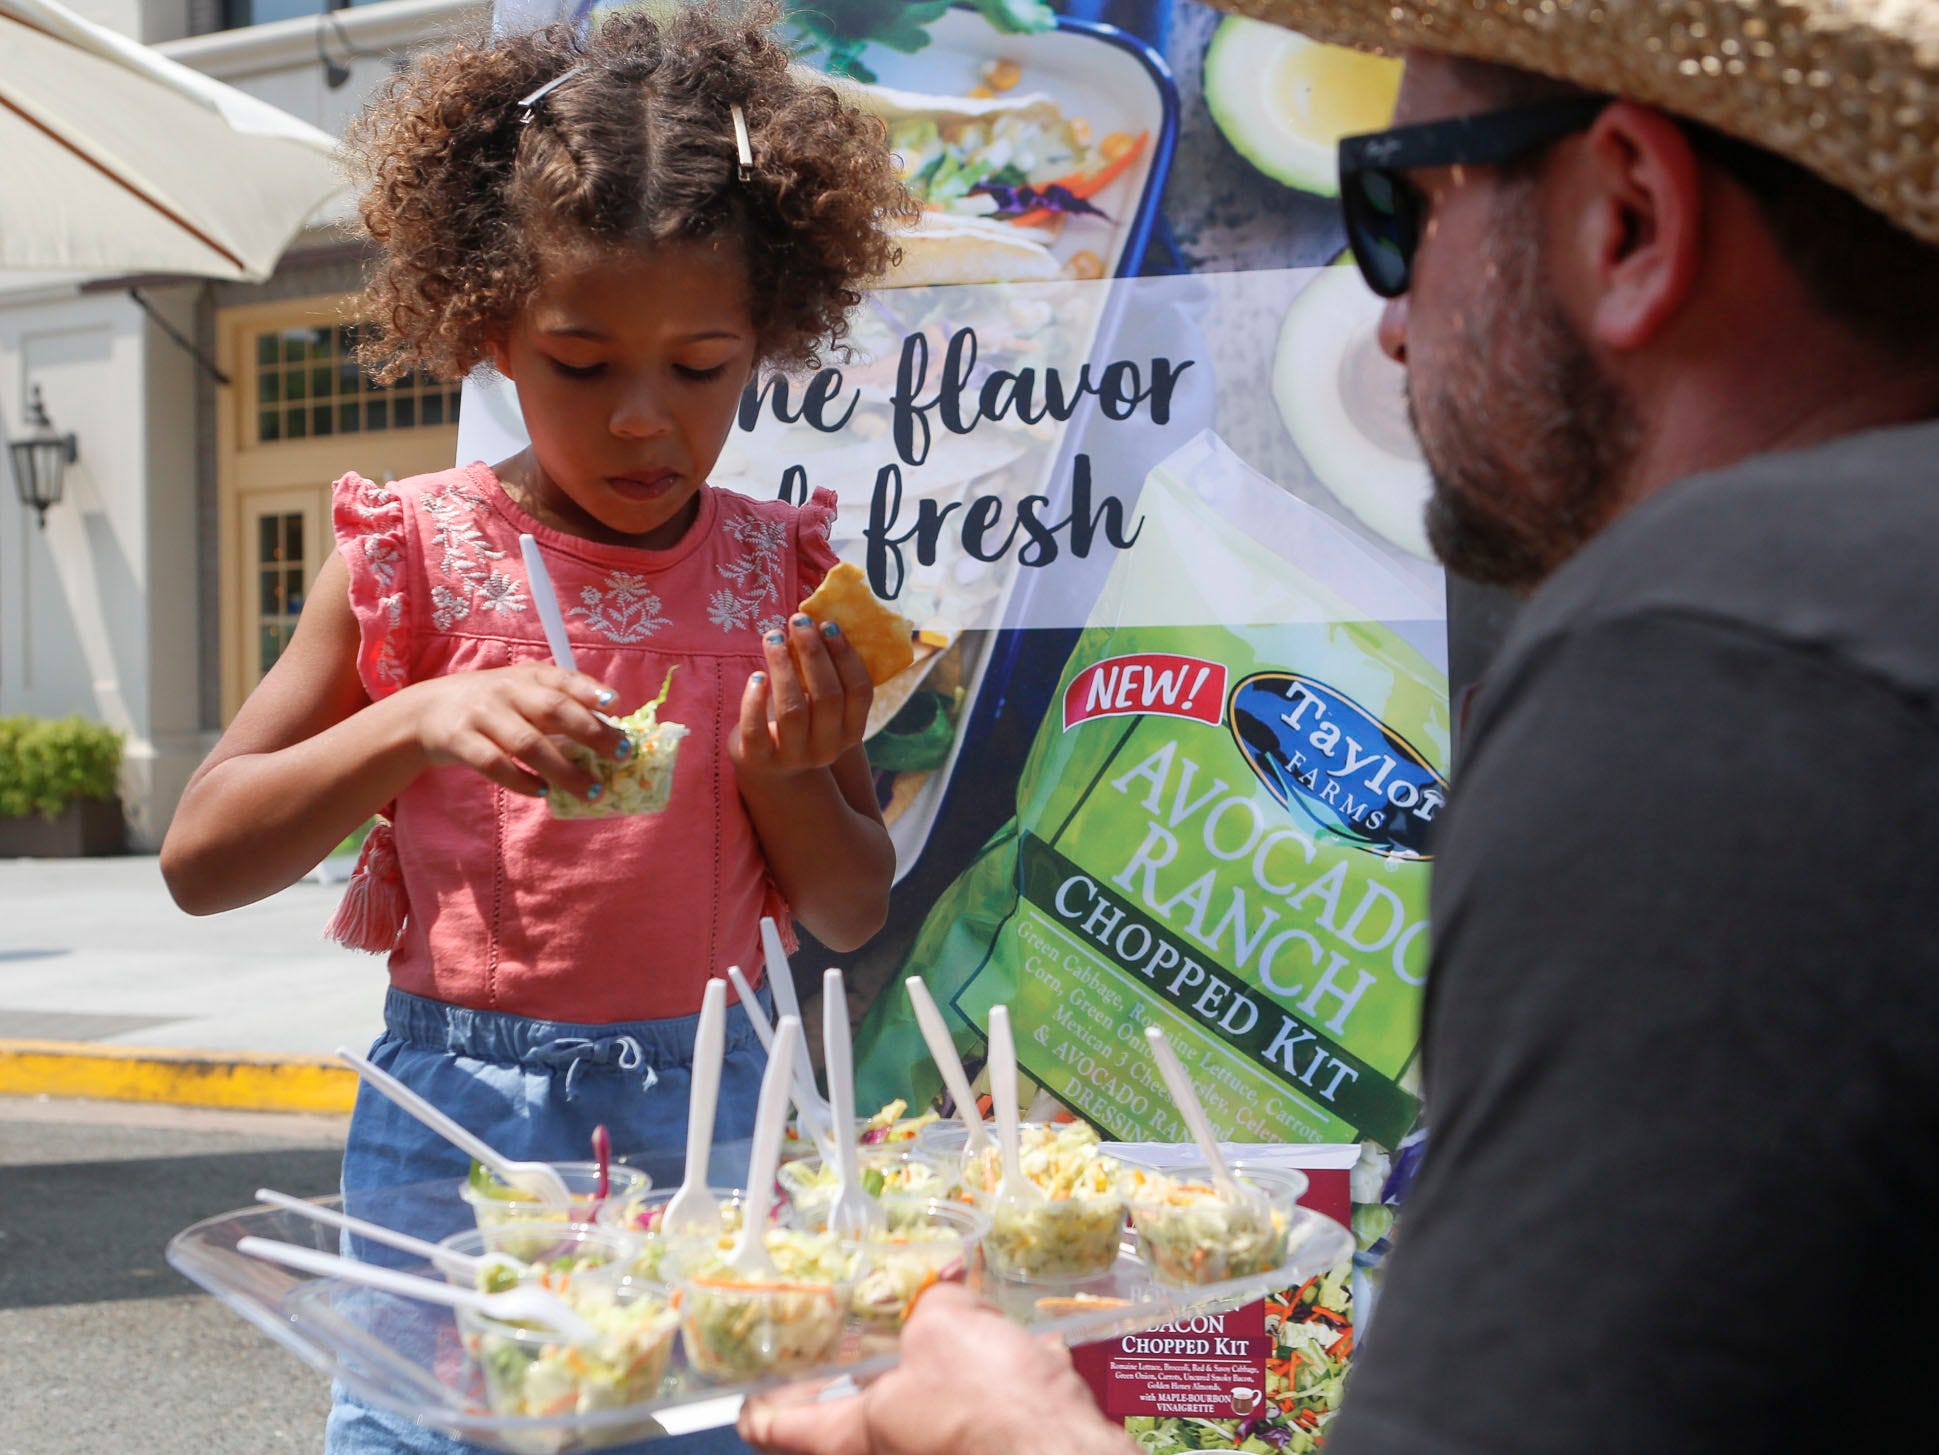 A young girl samples a Taylor Farms salad during the 2018 Salinas Valley Food and Wine Festival which takes place on Main Street in Old Town Salinas on Saturday, August 11, 2018.